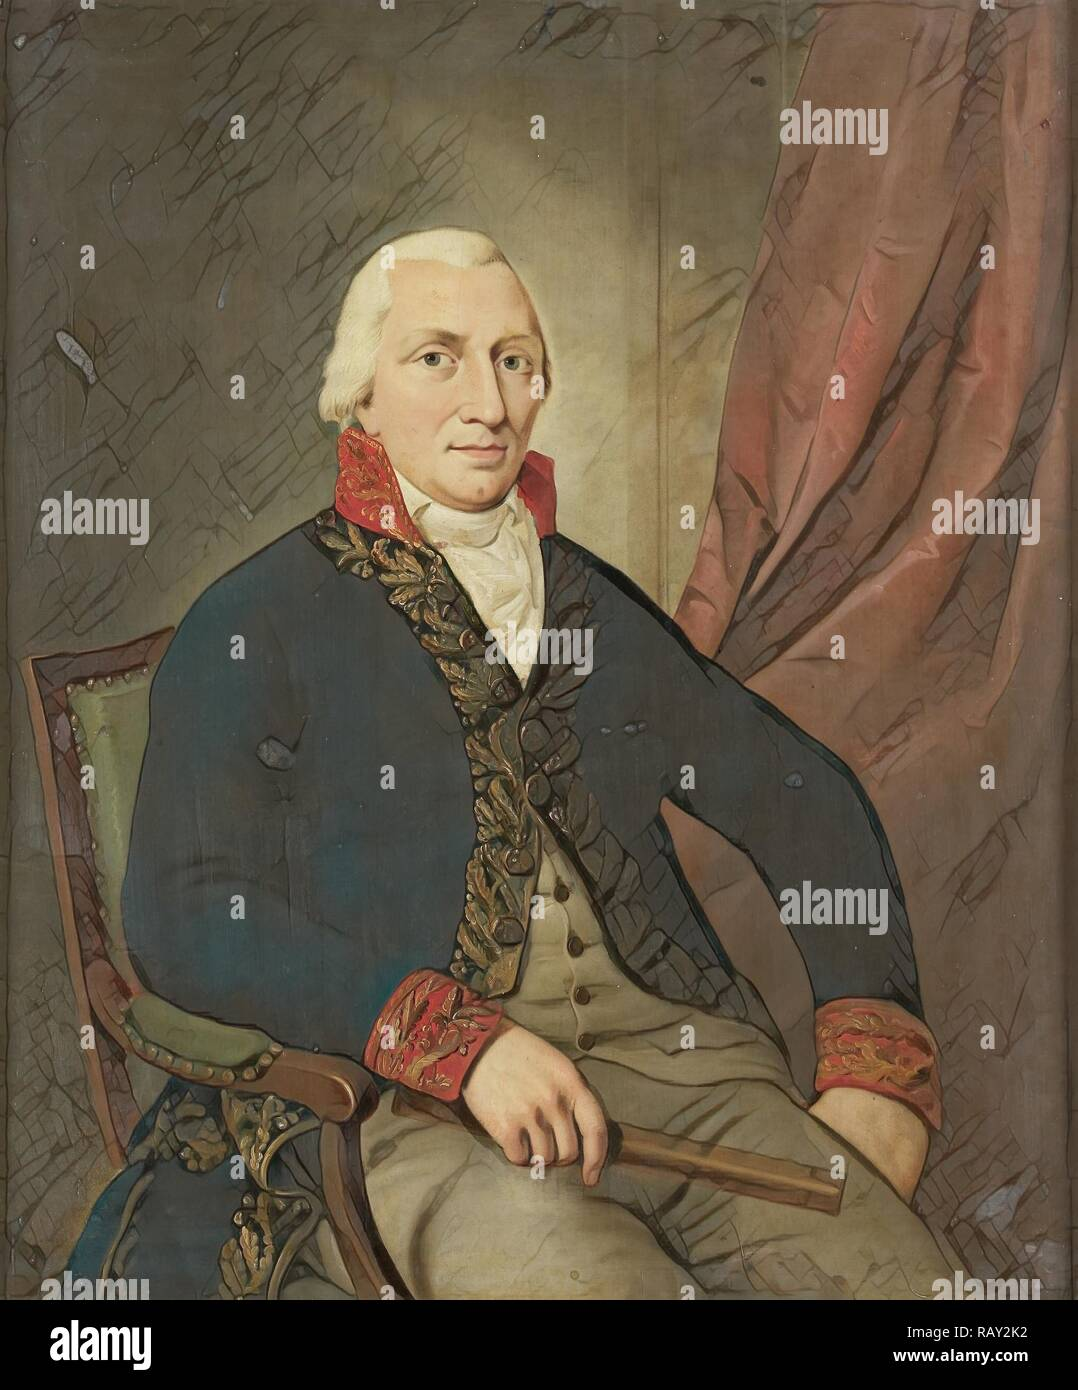 Portrait of Albertus Henricus Wiese, Governor-General of the Dutch East Indies, attributed to Adriaan de Lelie, 1805 reimagined - Stock Image